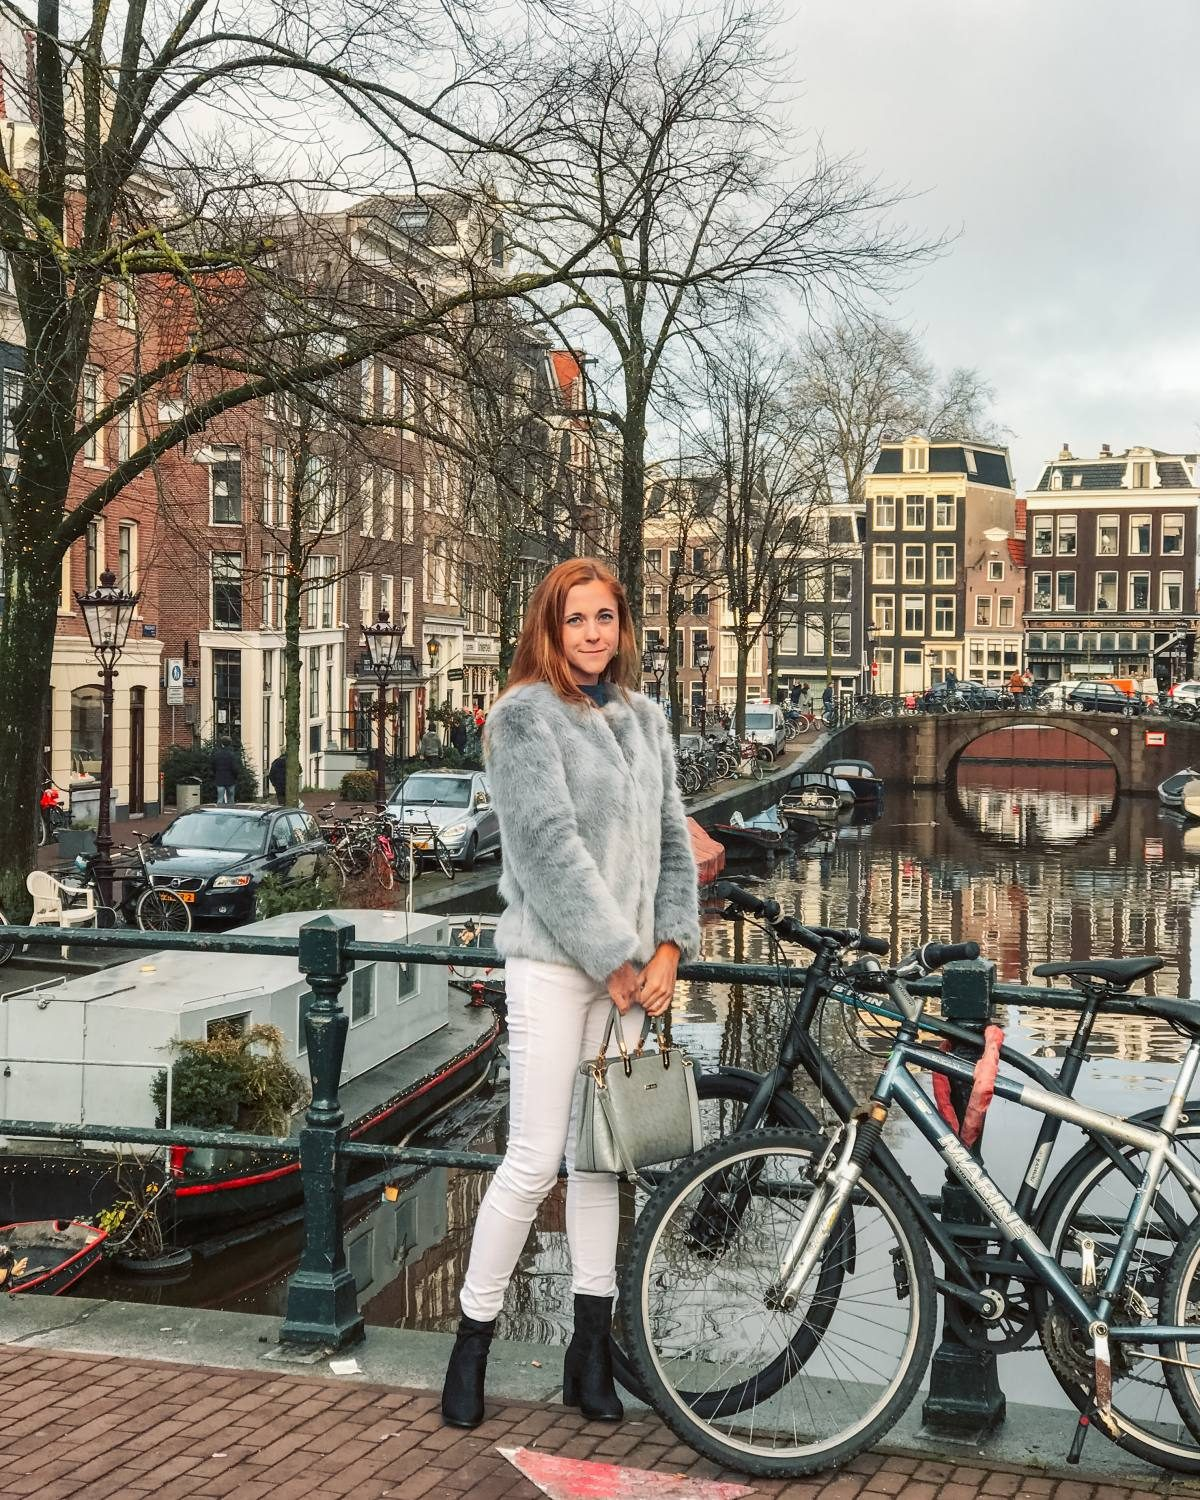 Amsterdam best neighborhoods